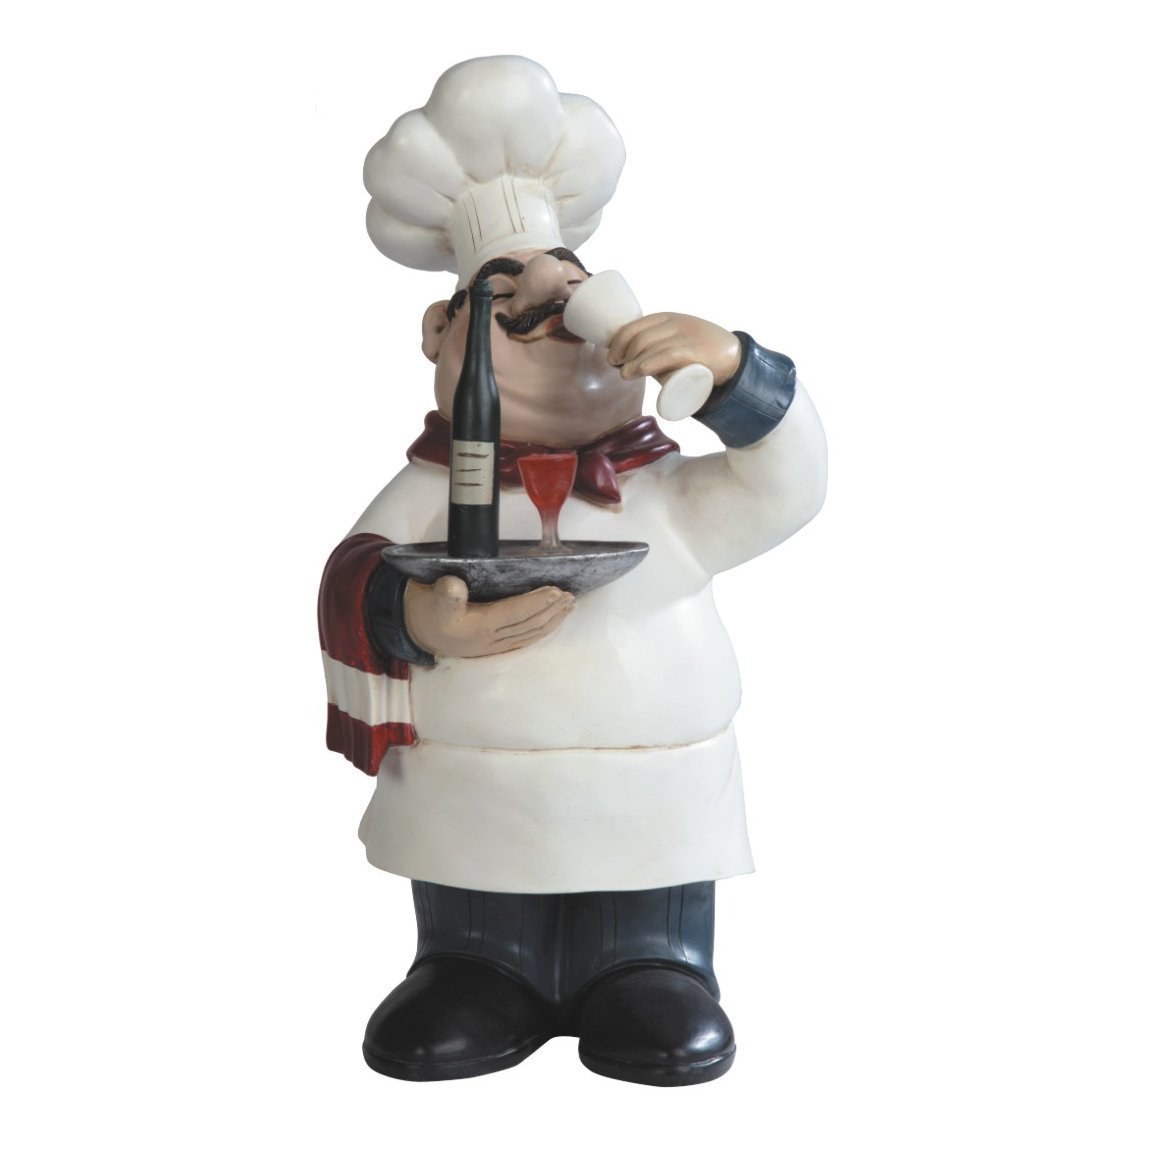 Italian Chef Decorations Kitchen Total Fab Fat Chef Statues A Bit Of Bistro Themed Kitchen Decor